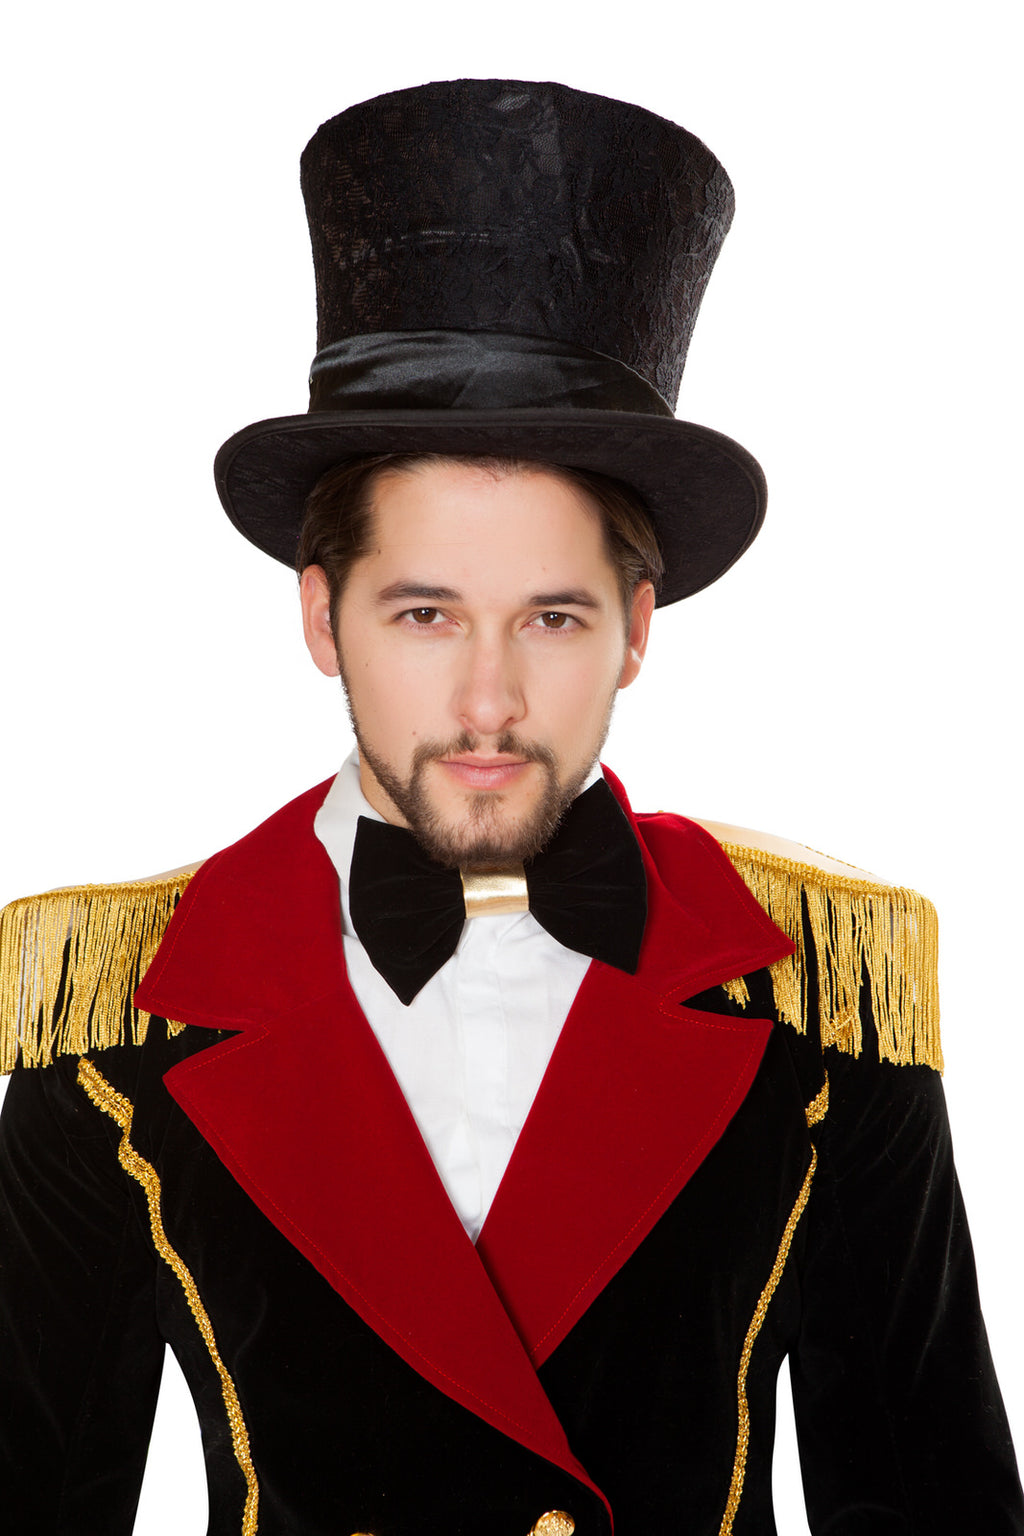 Adult-Men's-Circus-Ringleader-Black-Top-Hat-Party-Costume-Accessory